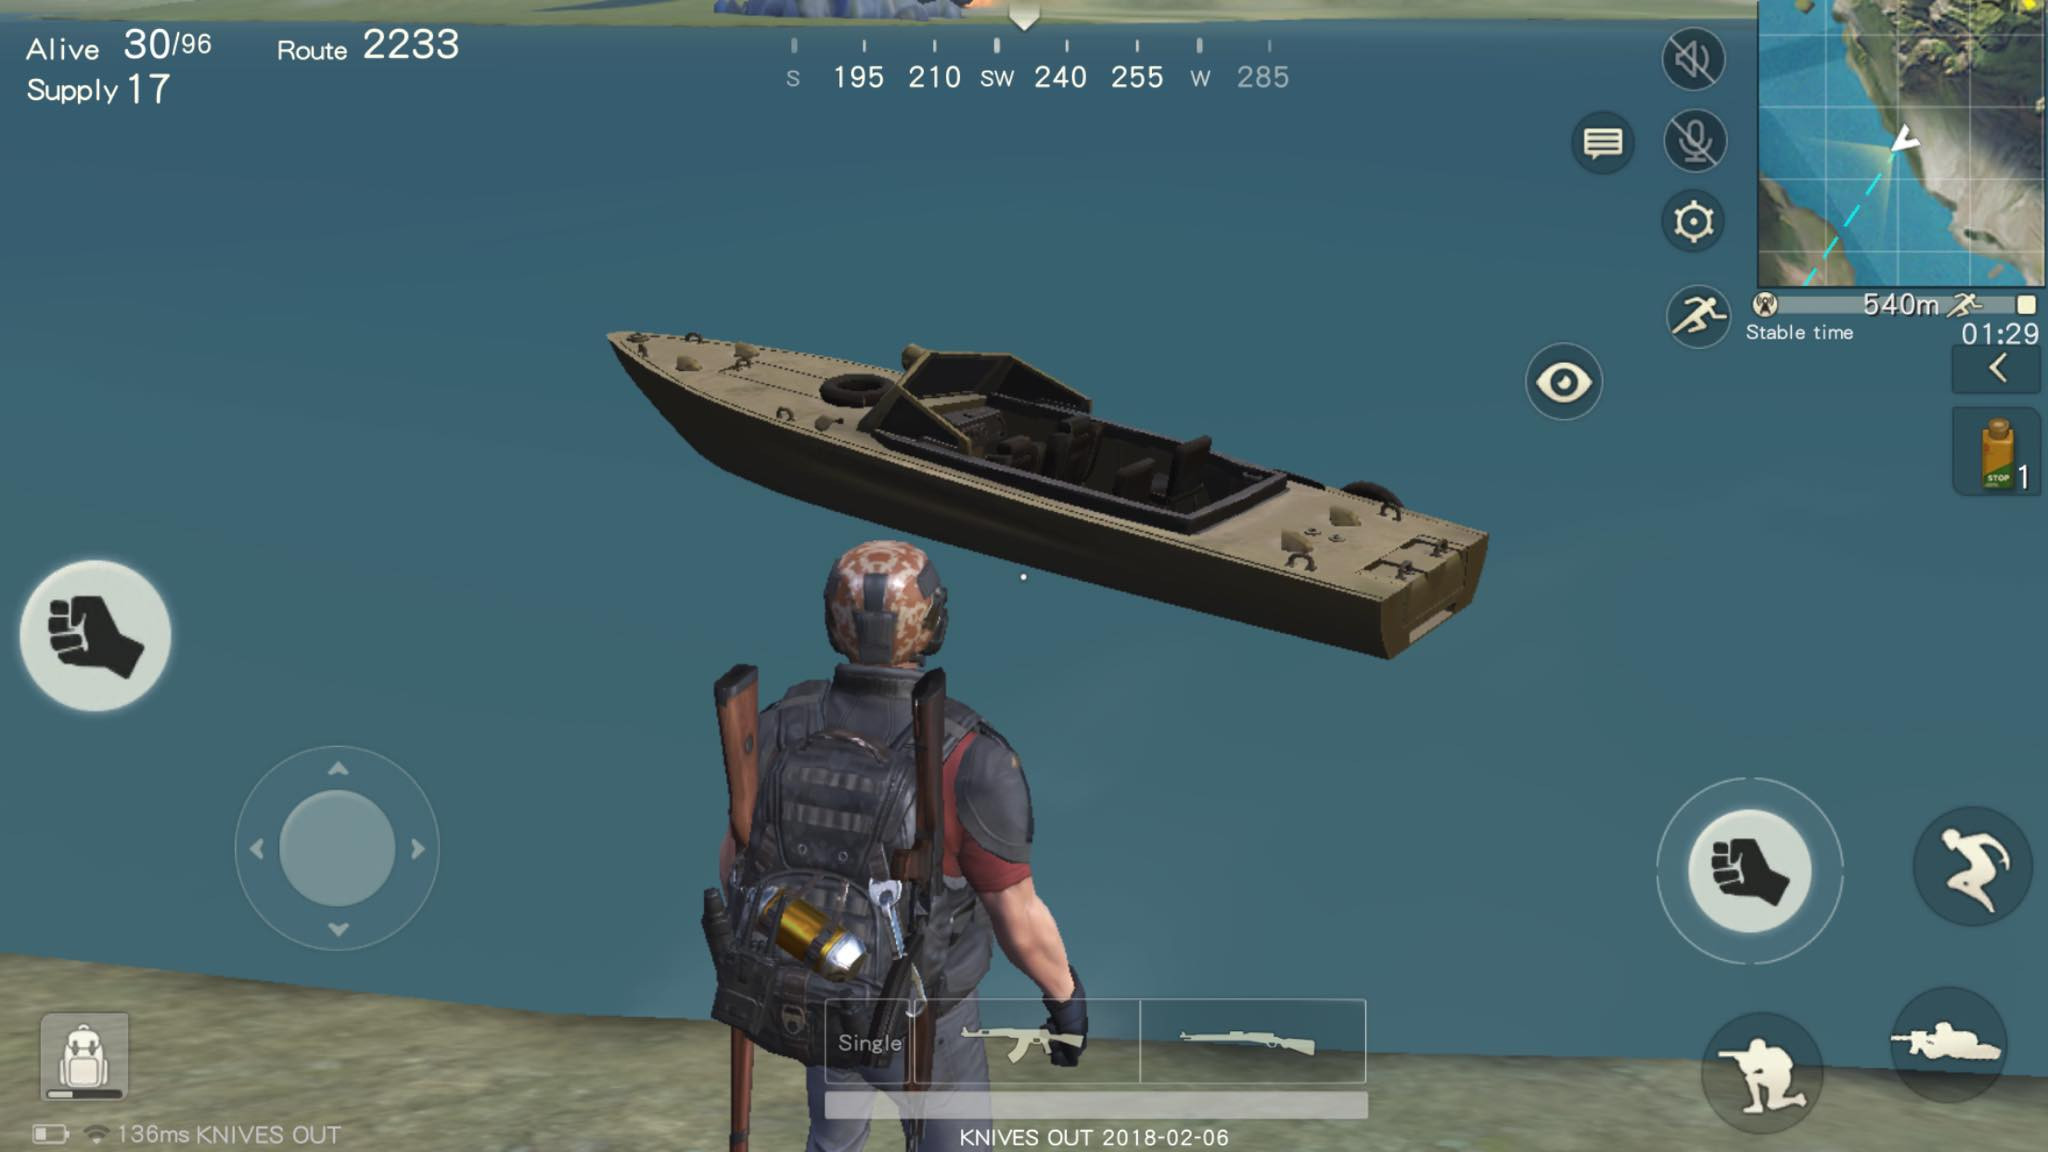 Knives Out Boat